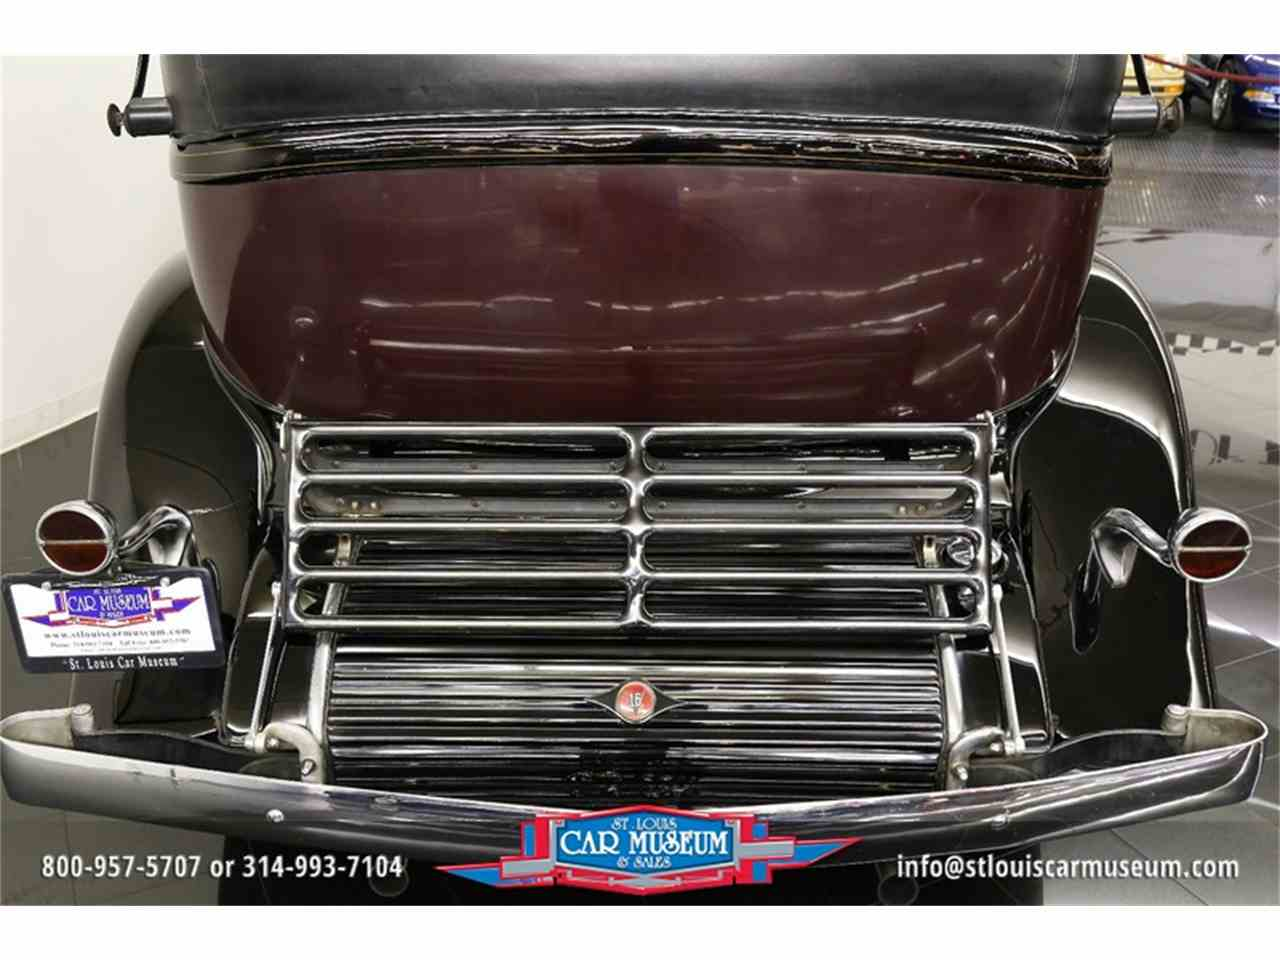 Large Picture of 1931 Cadillac V-16 Madam X Landau Sedan located in Missouri Offered by St. Louis Car Museum - JSU3